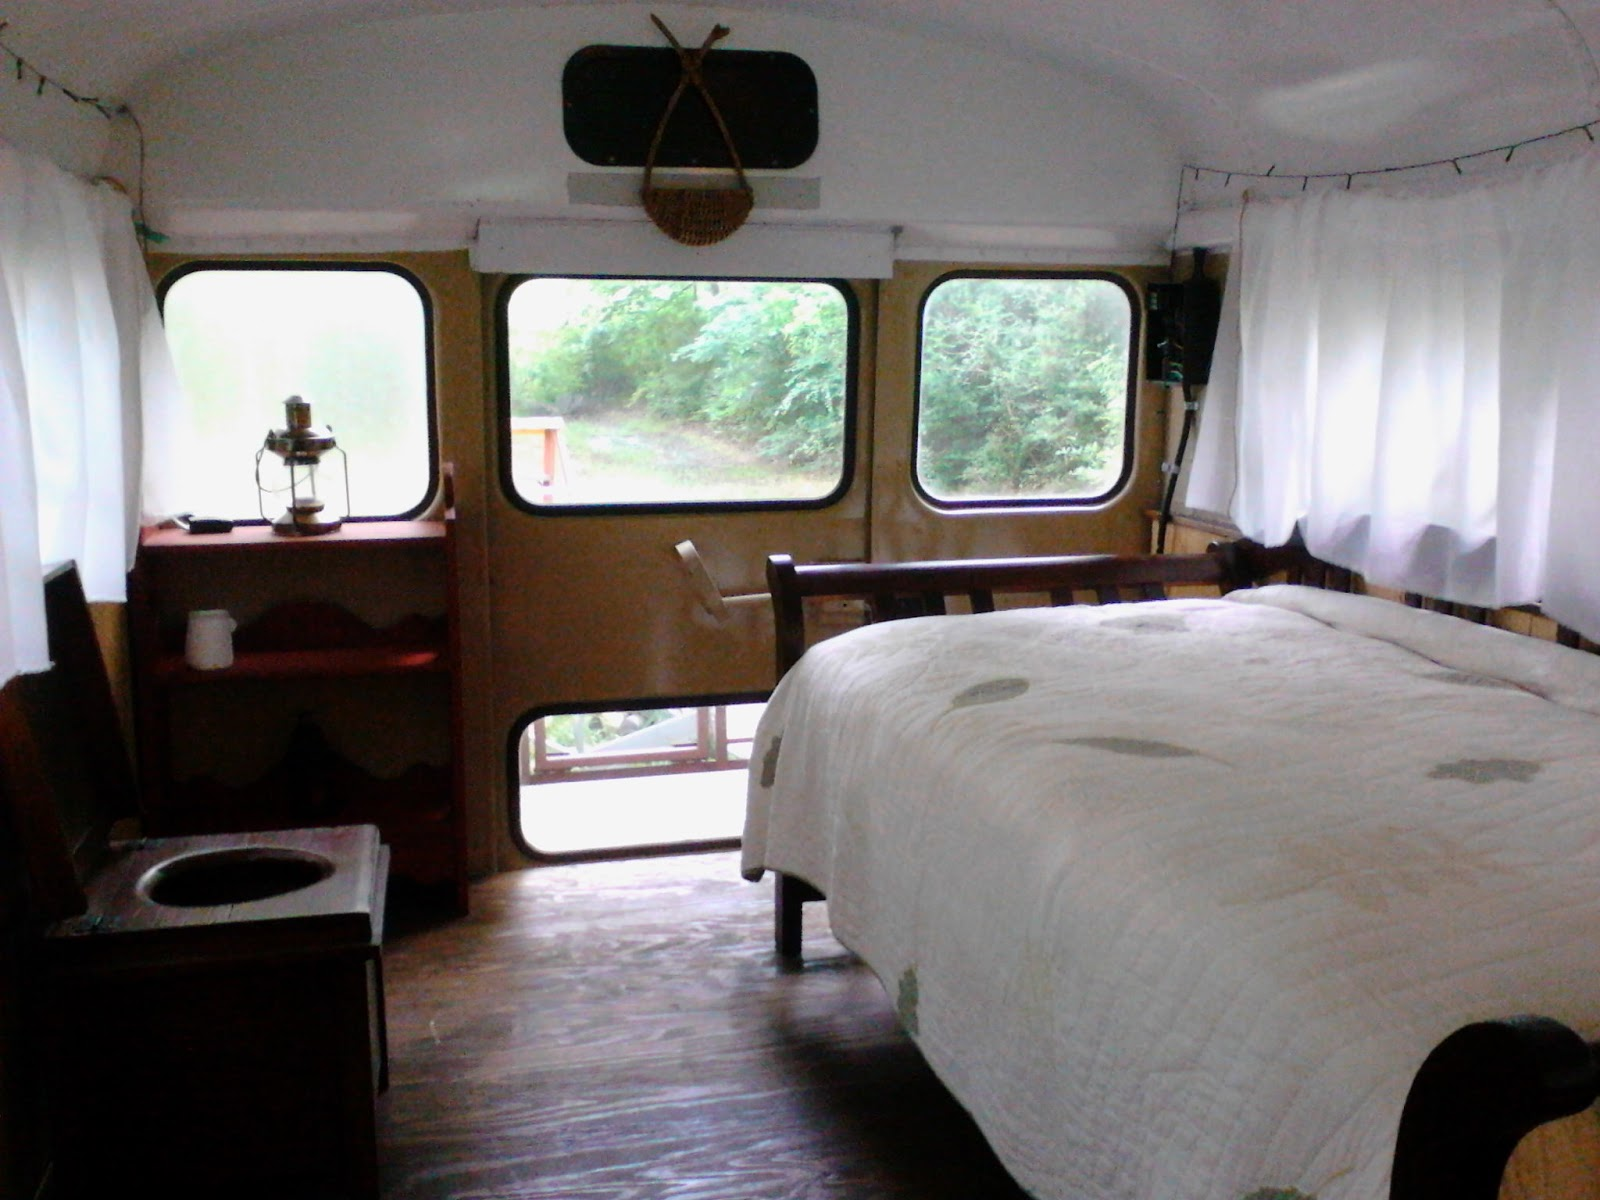 I Prefer Rustic And Vintage Over Fancy Or Modern Wanted My Bus To Look Like A Not RV It Feel Tiny Home